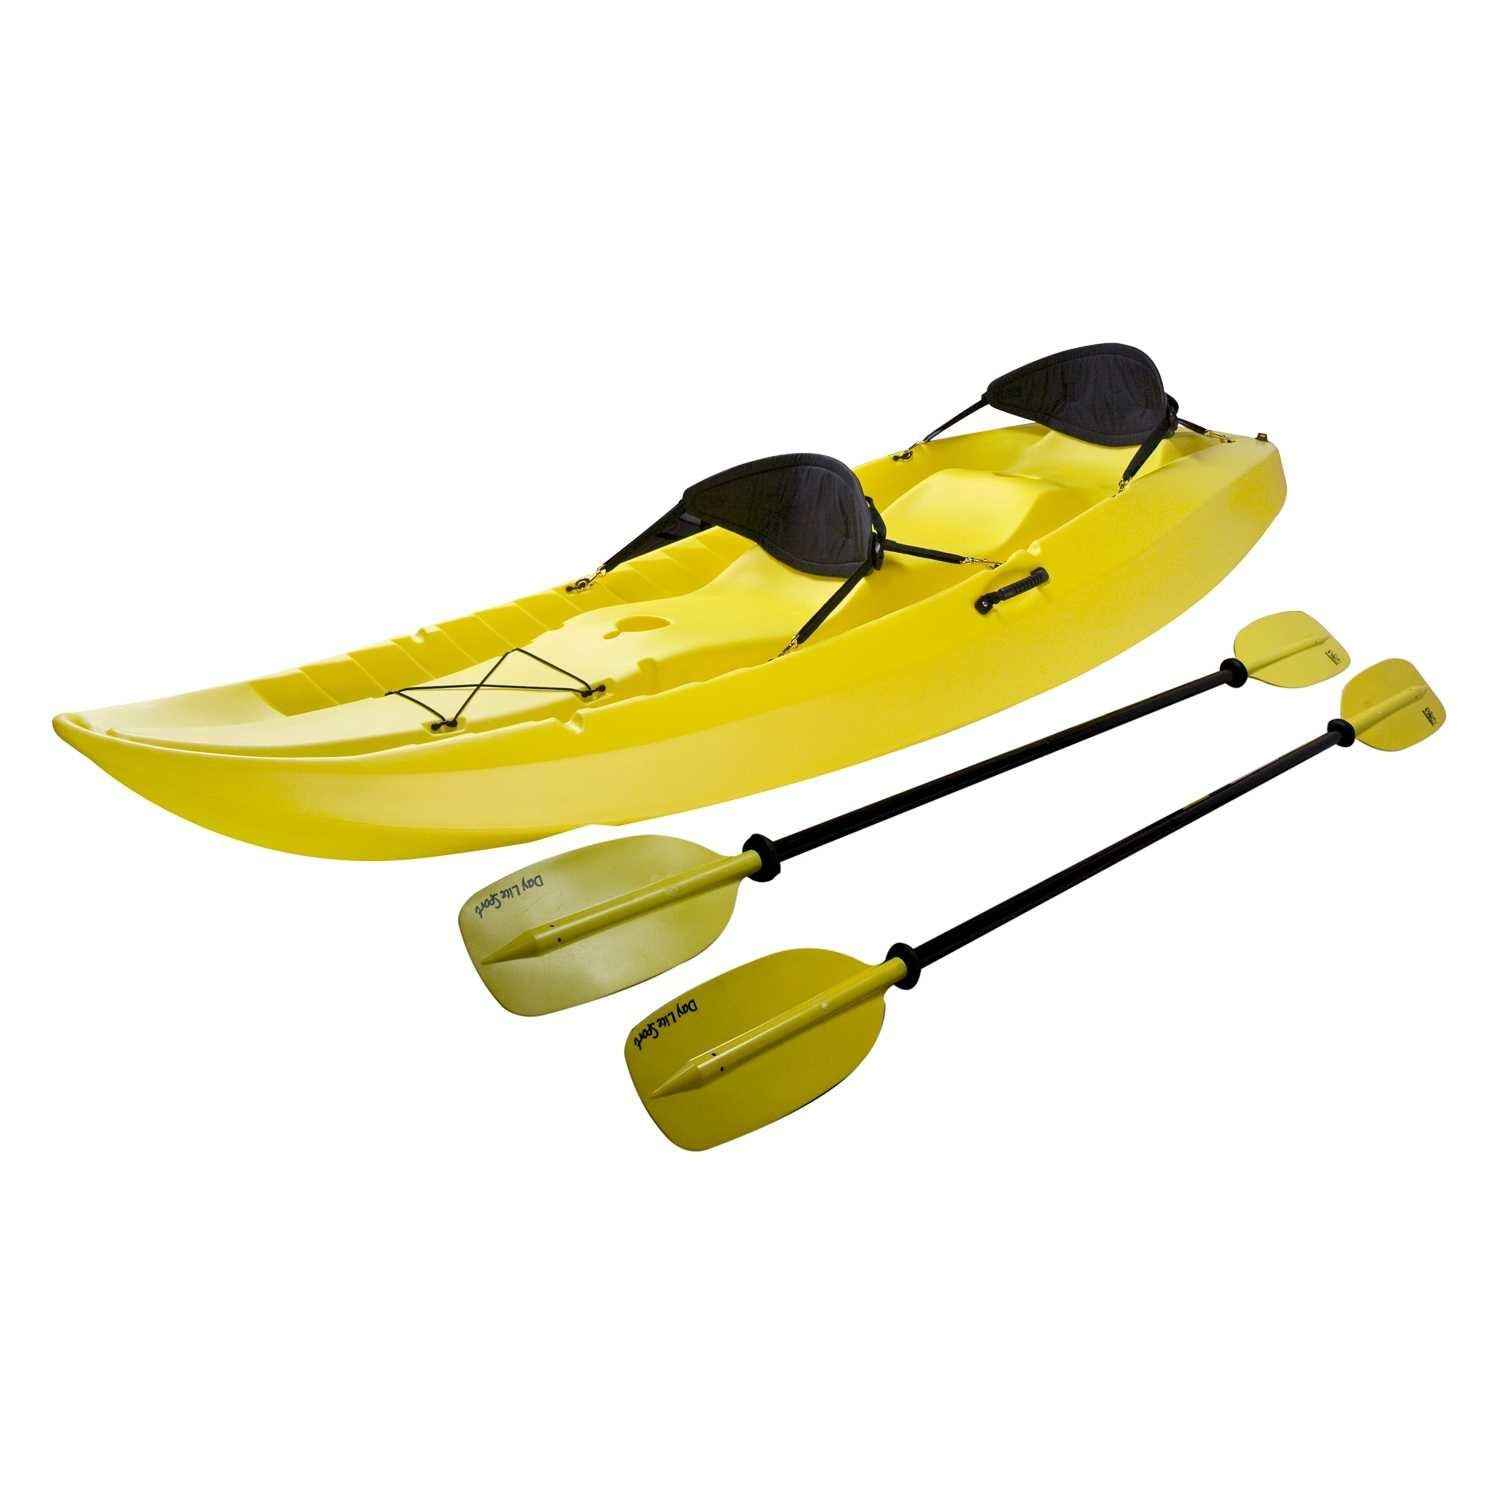 Lifetime 10 Foot Manta Tandem Kayak Review